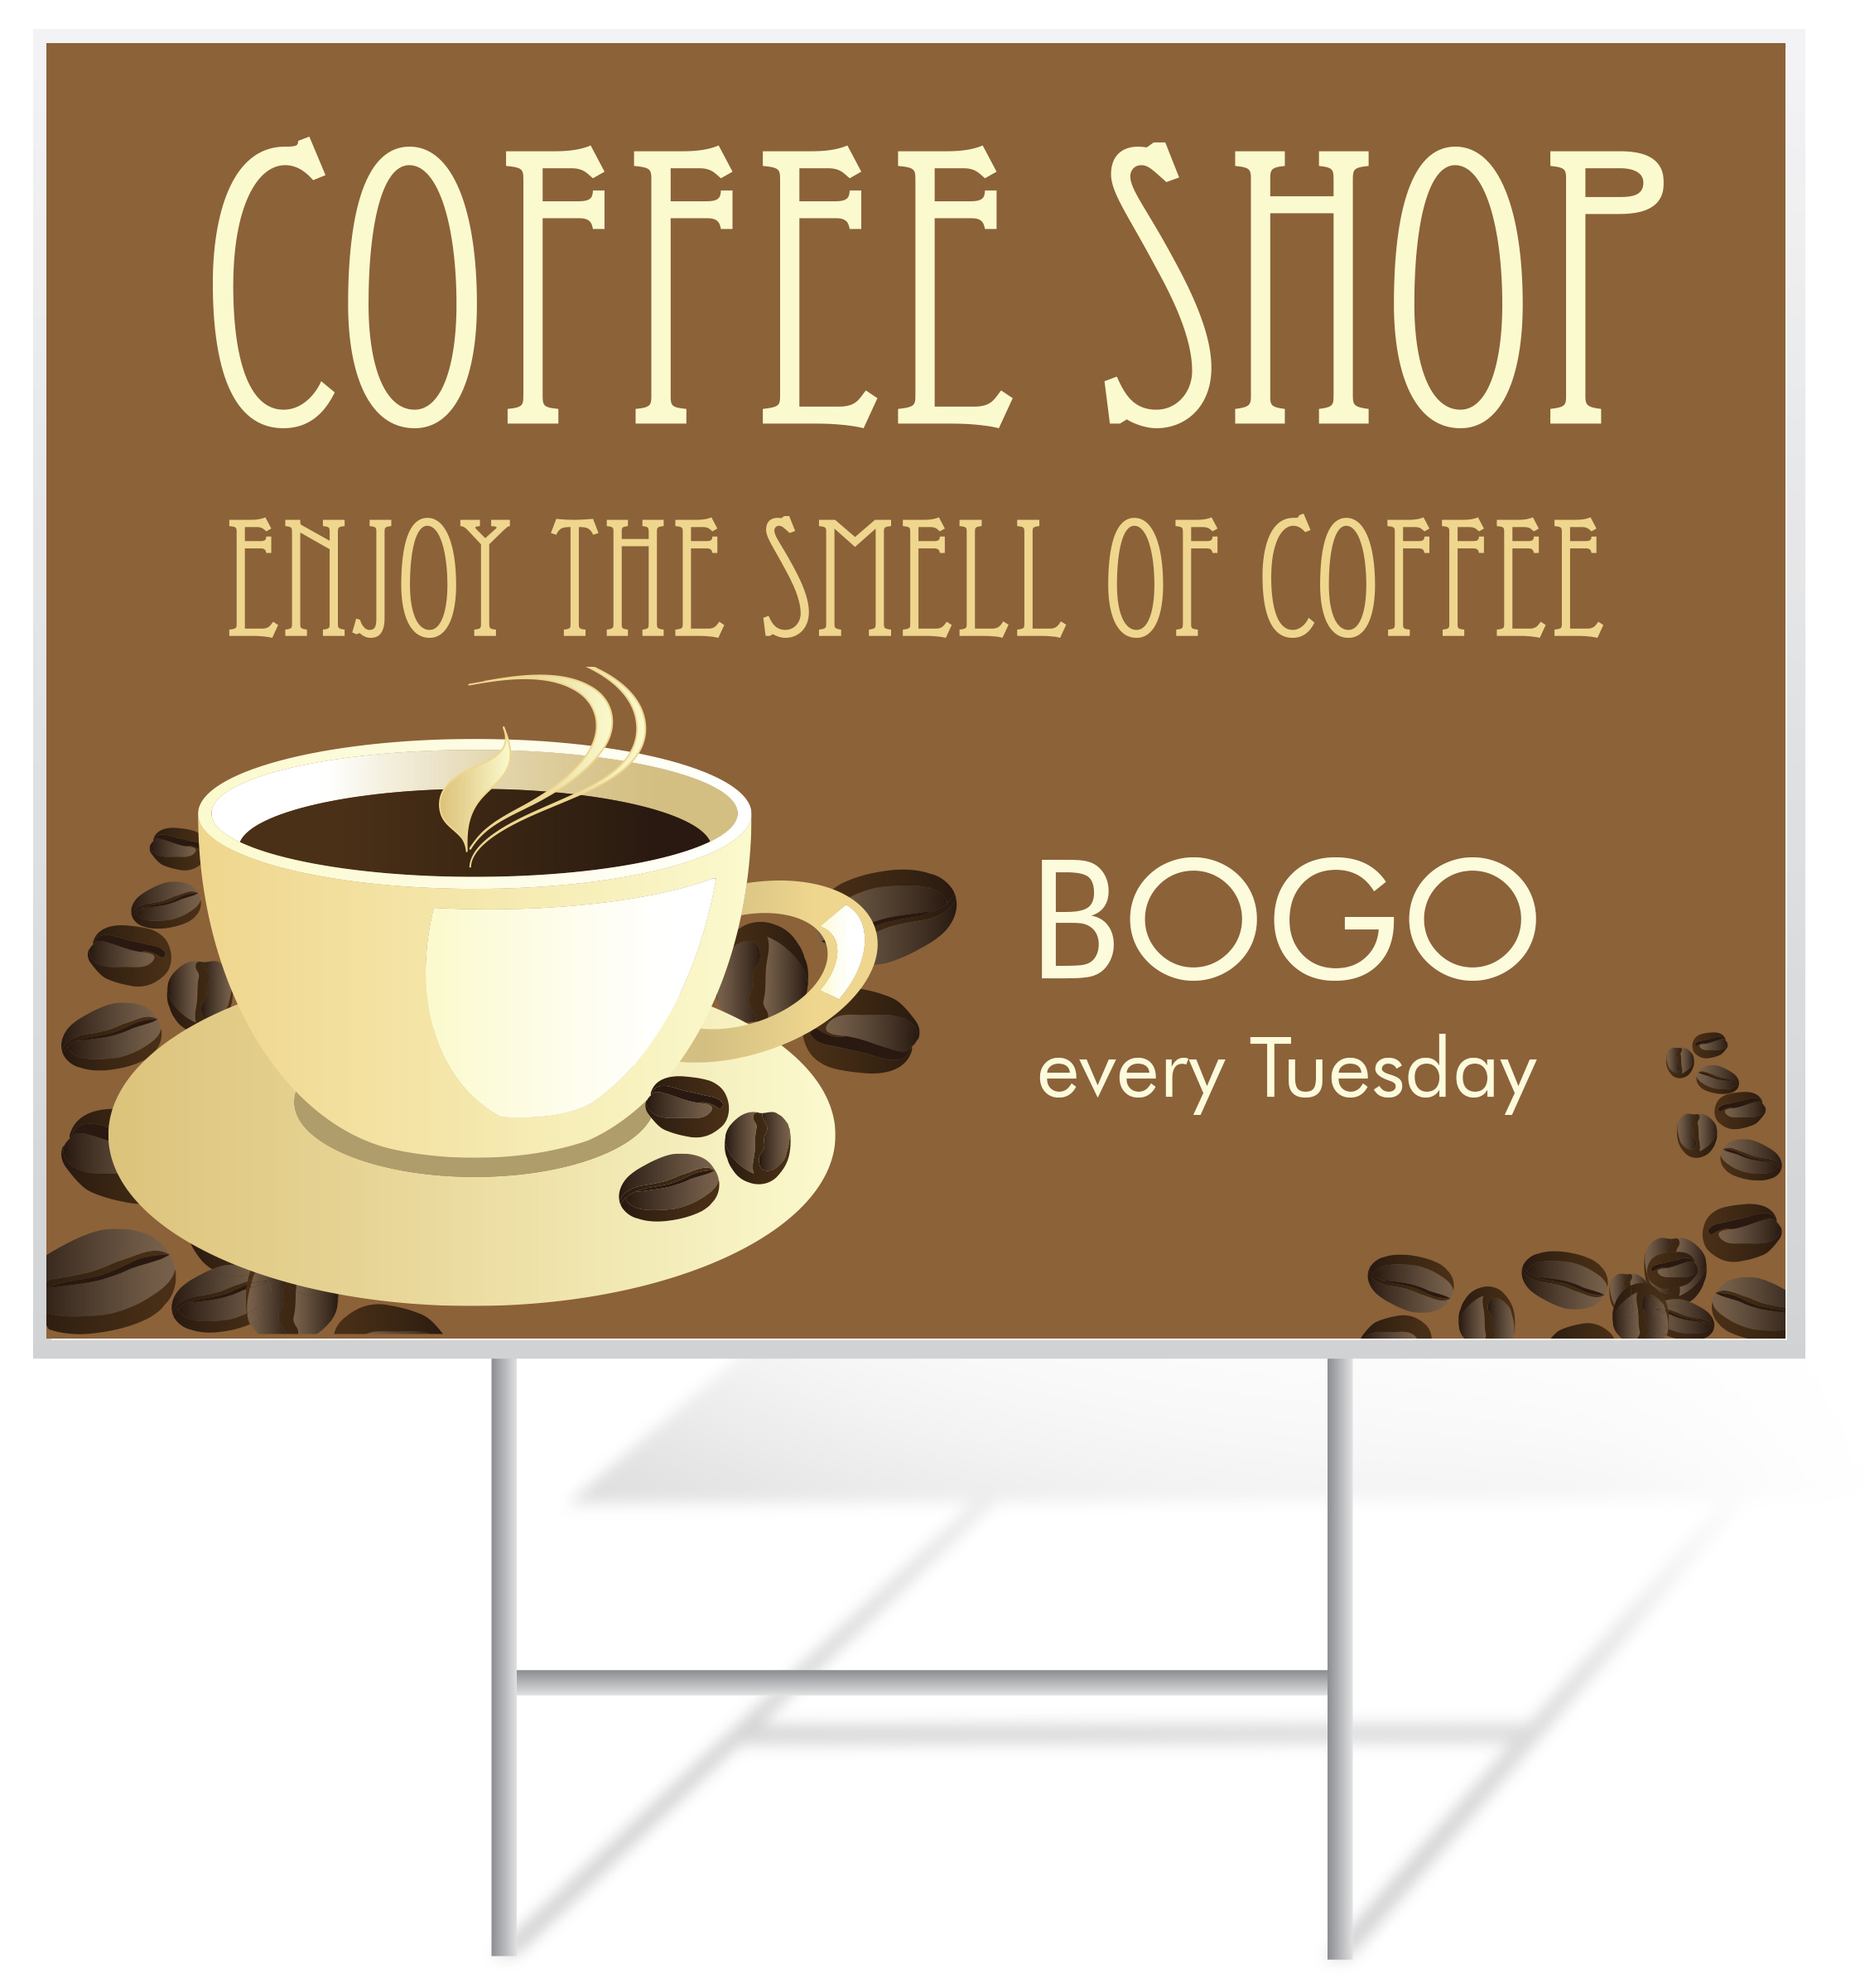 Coffee Shop Advertising Lawn Sign Example | LawnSigns.com